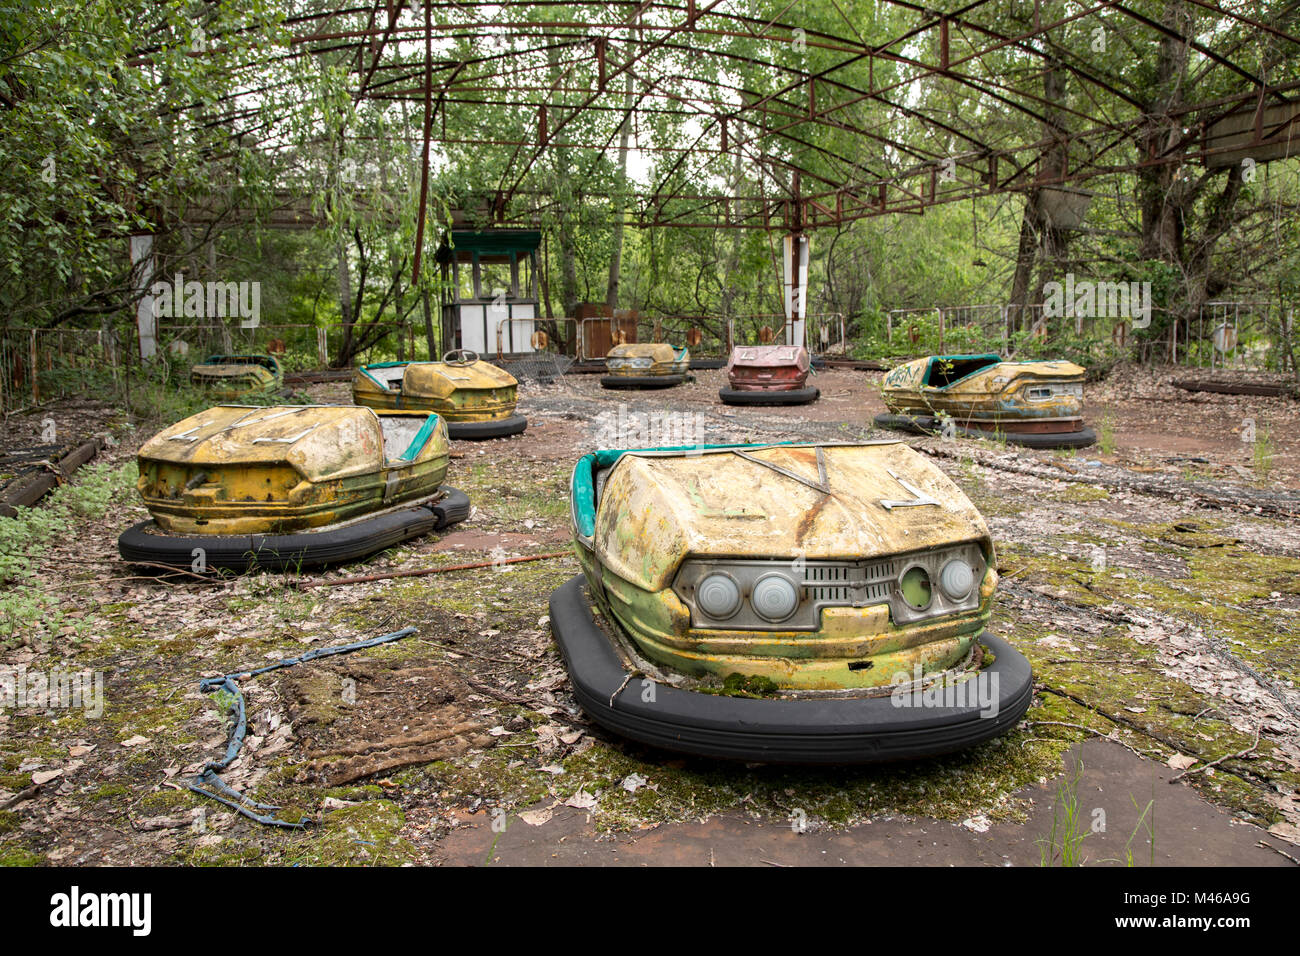 The iconic dodgem cars in the abandoned town of Pripyat, Chernobyl - Stock Image